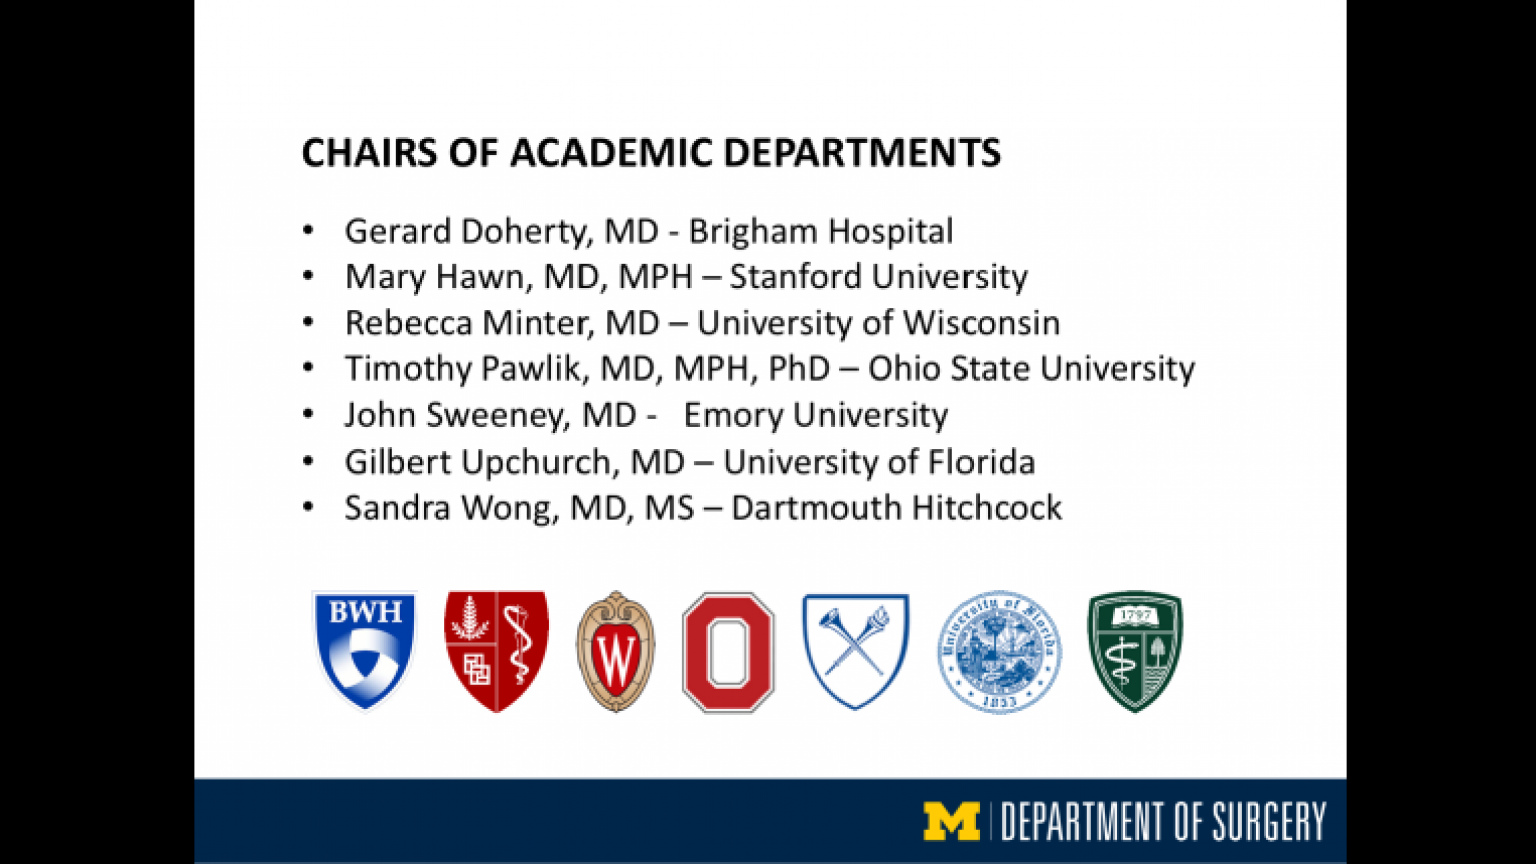 """Chairs of Academic Departments Nationally - ninth slide of """"This Is What We Stand For"""" presentation"""